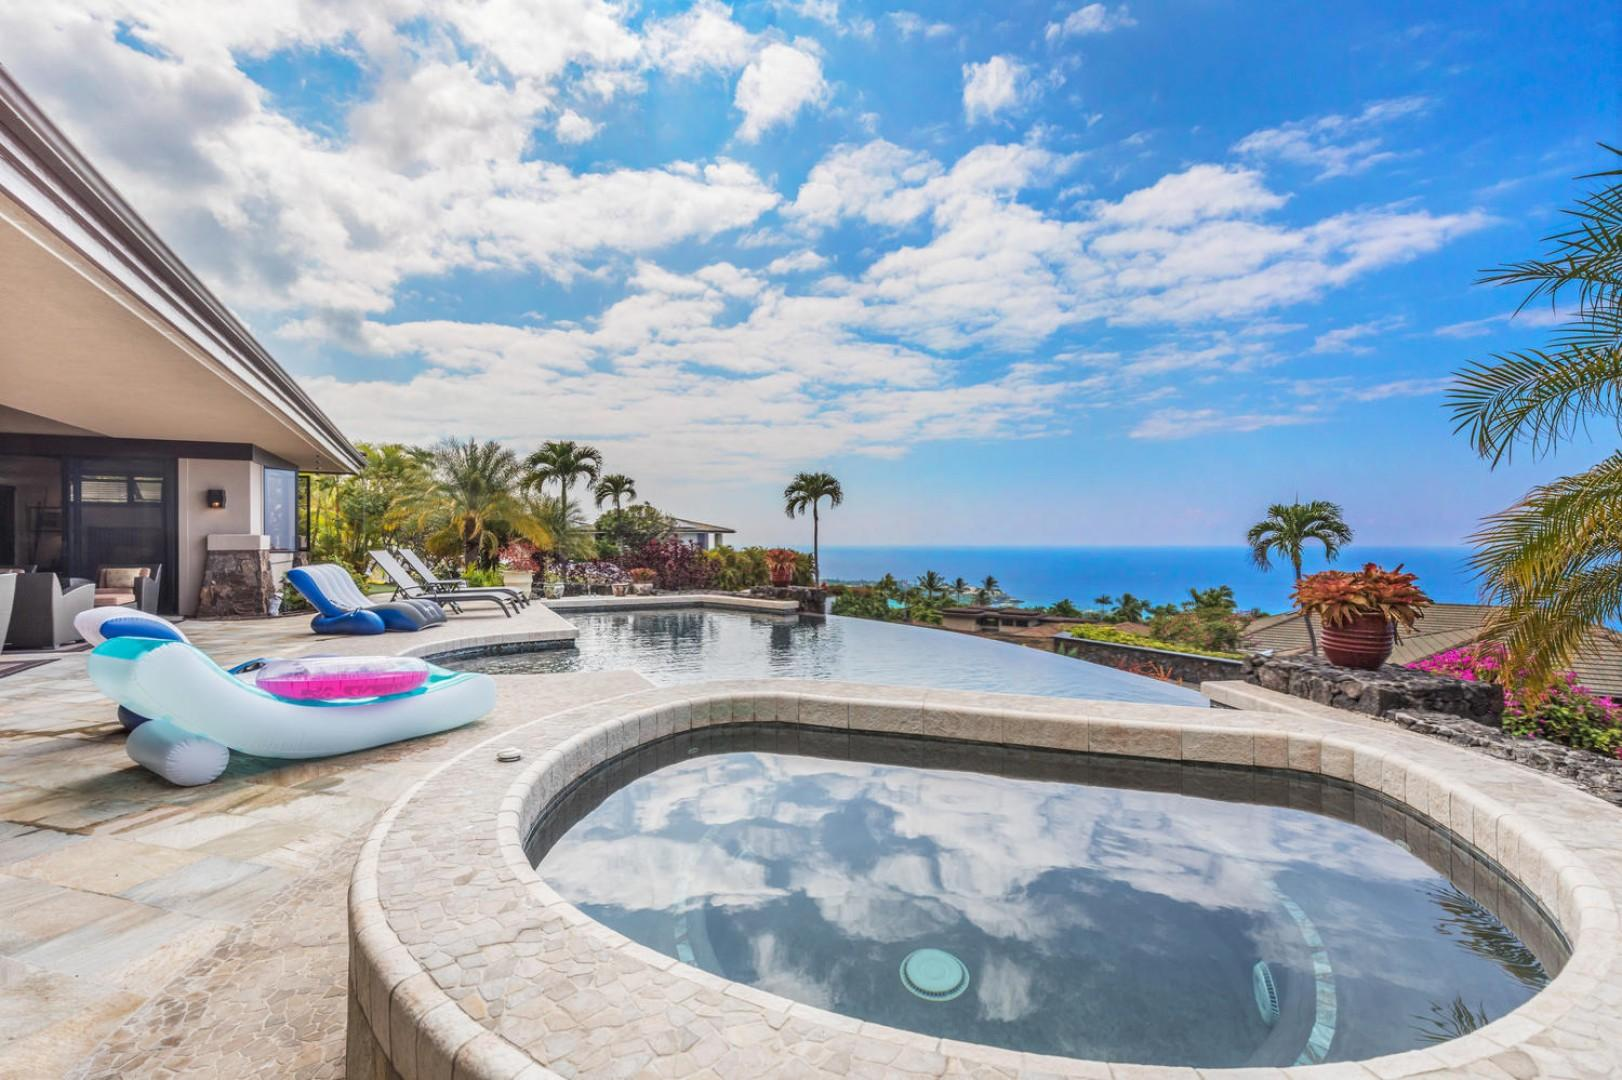 Sit Pool side and take in all that Island Oasis has to offer